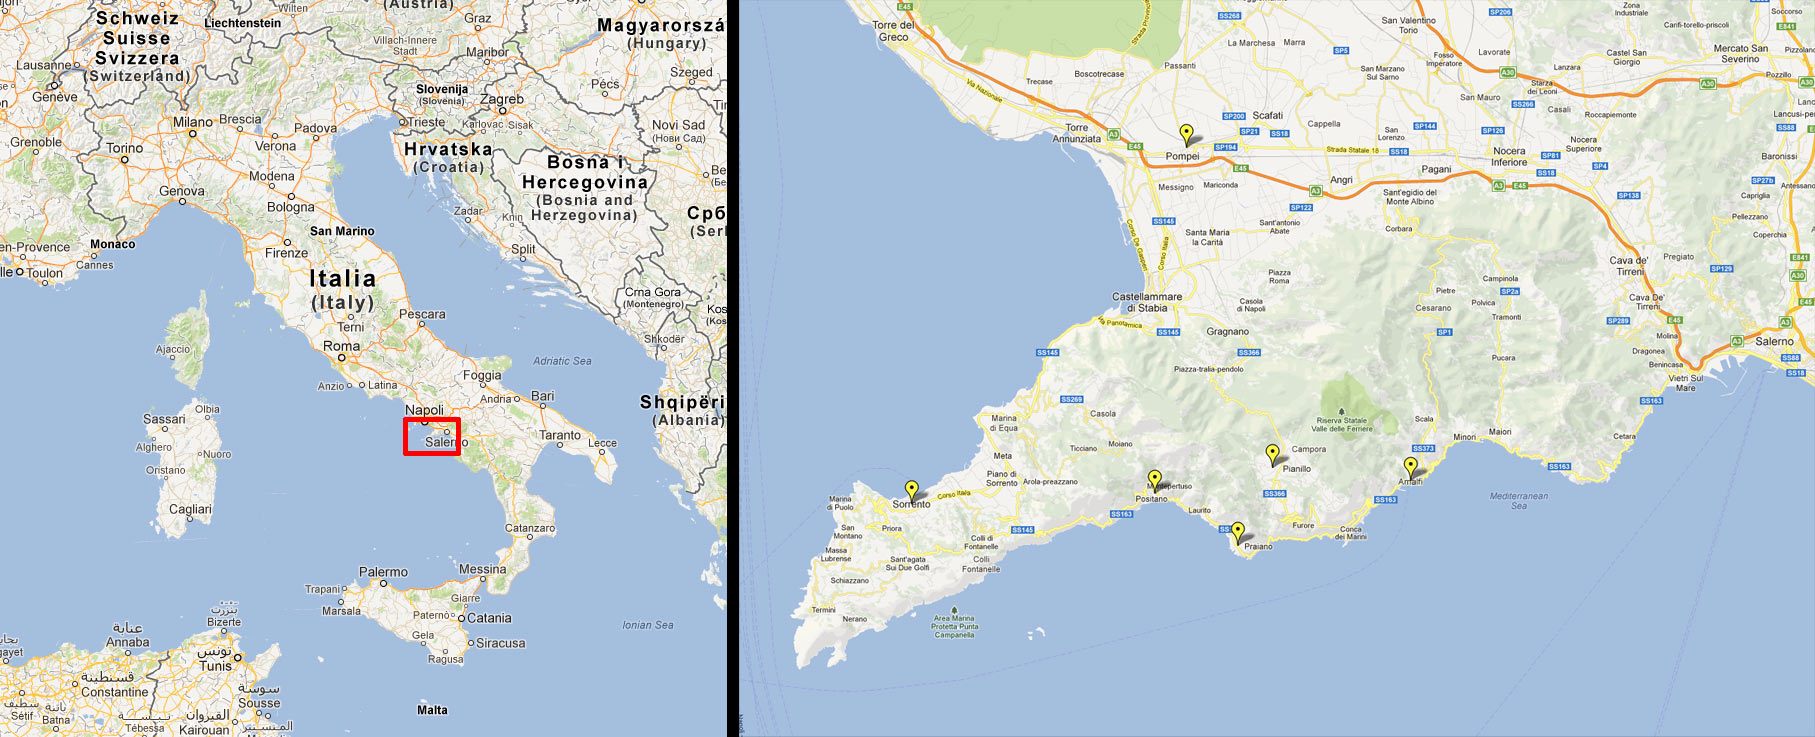 map of new youk with Dia 28 Amalfi Praiano Sorrento It on 2427326344 as well Relevance Some Brands Have It Some Need It further Florida likewise About Amorgos as well File Jackson Heights 1.